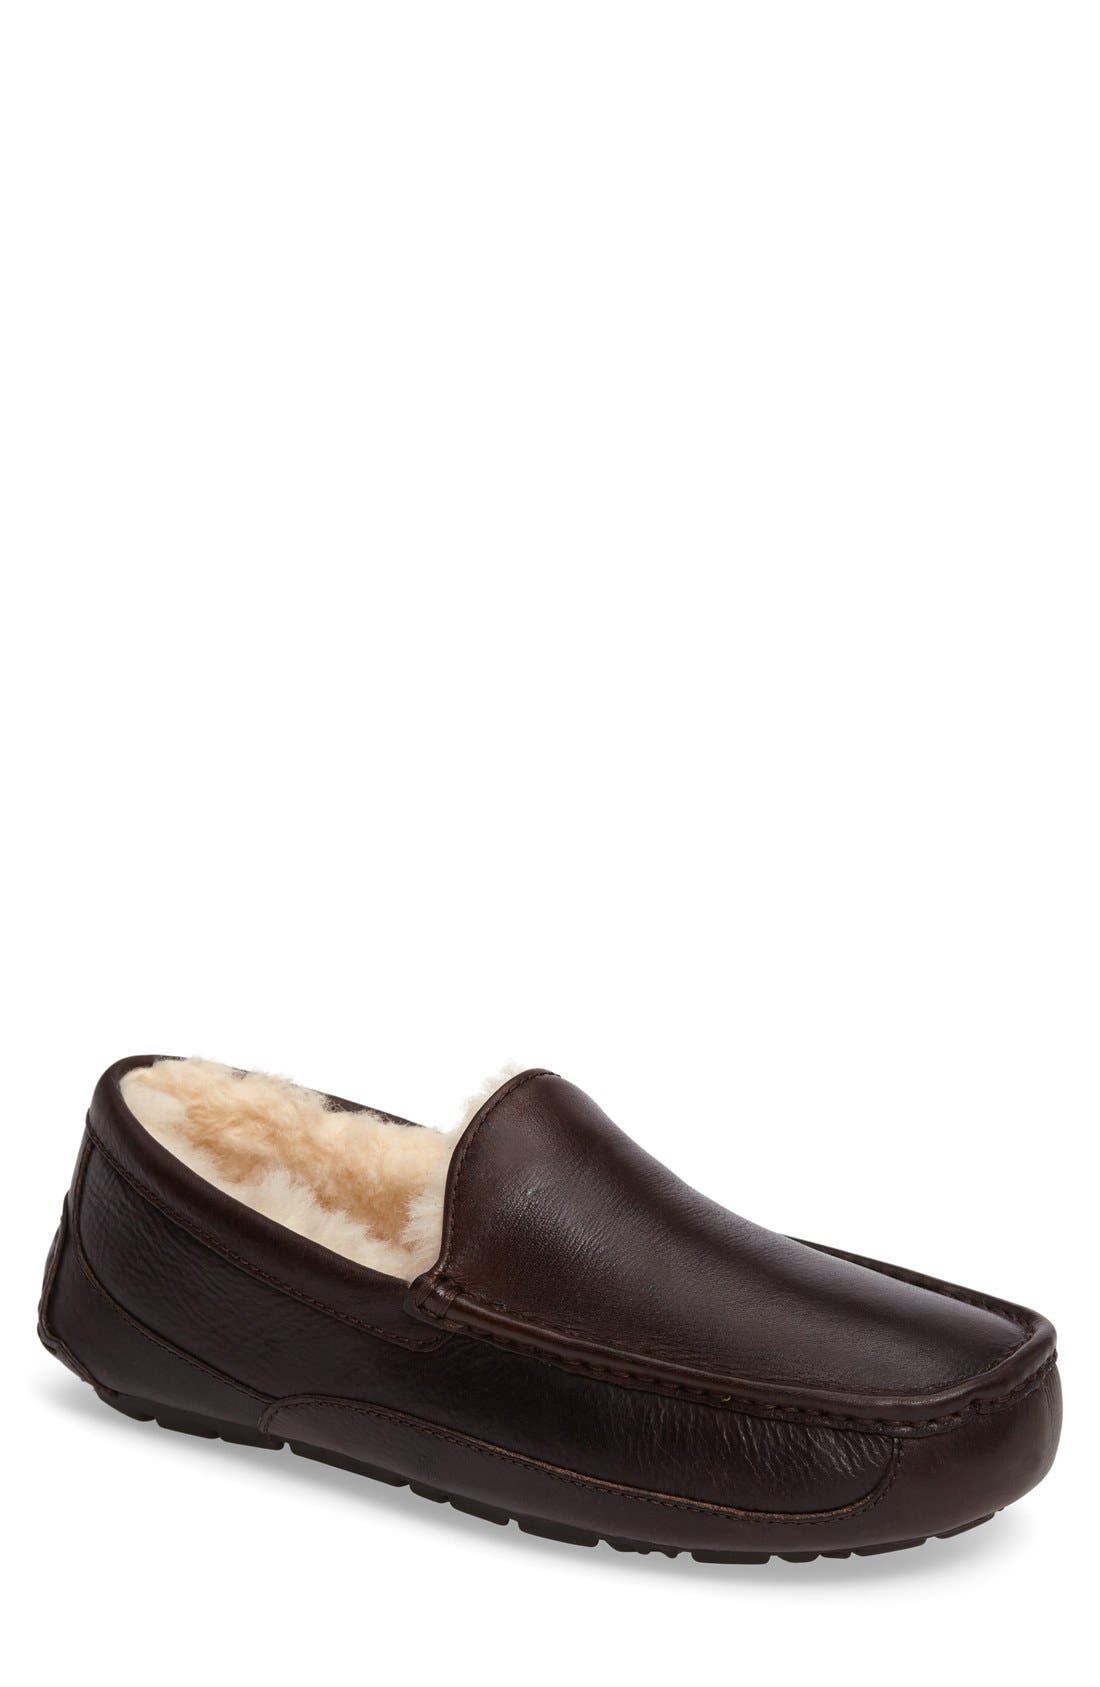 Alternate Image 1 Selected - UGG® Ascot Leather Slipper (Men)